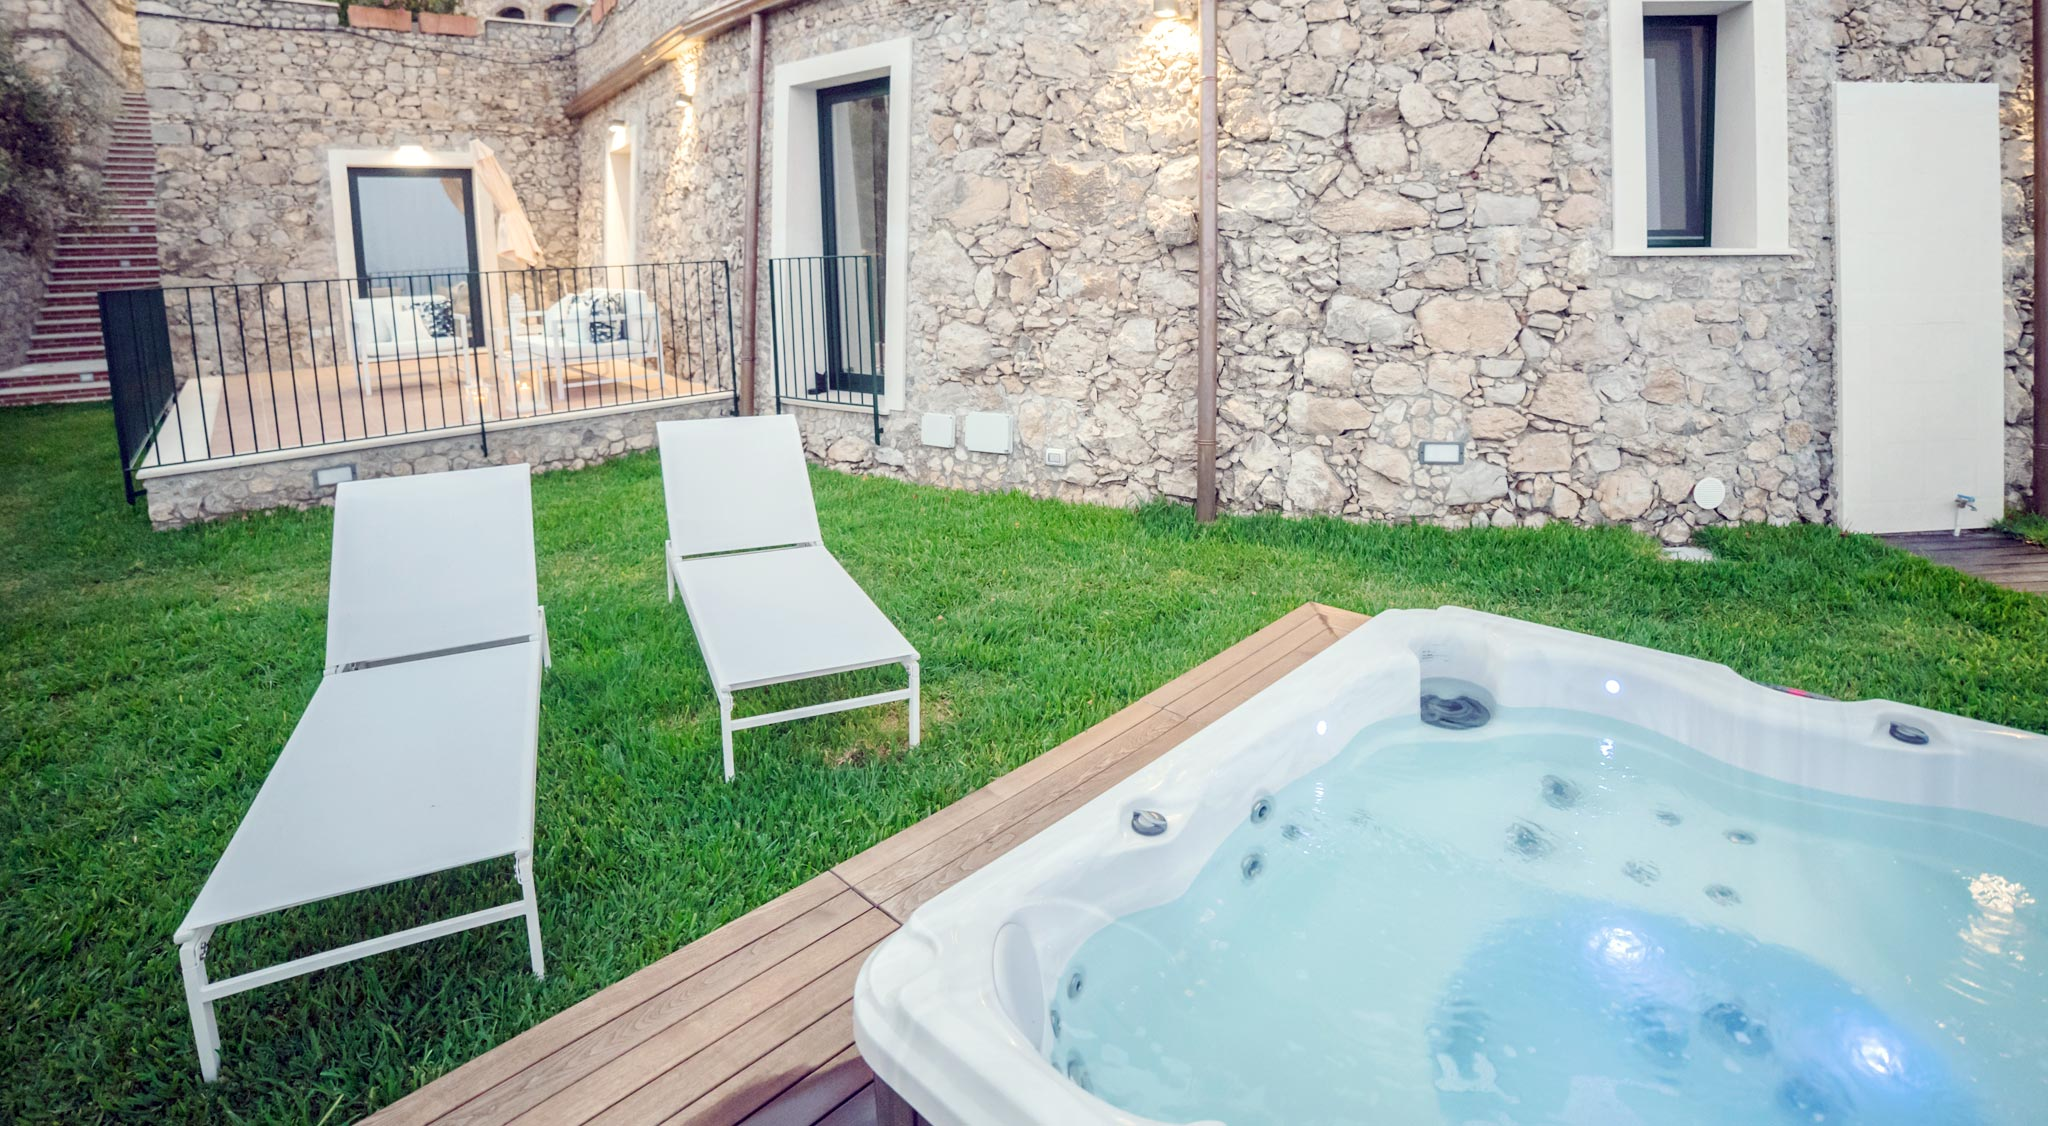 Luxury Suite Ulivo - Private terrace and Jacuzzi